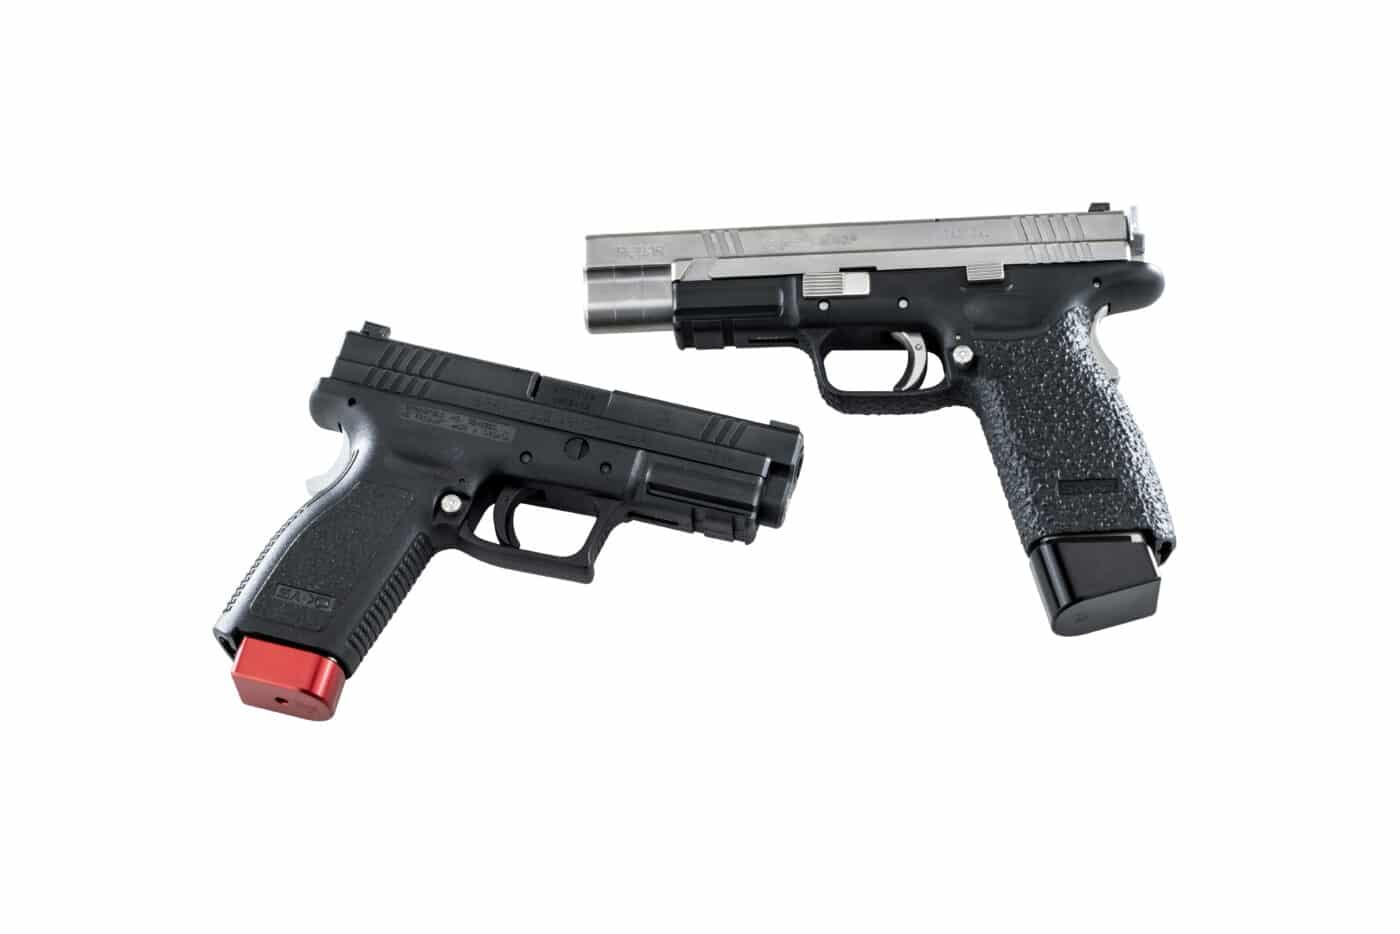 A pair of customized Springfield XD pistols